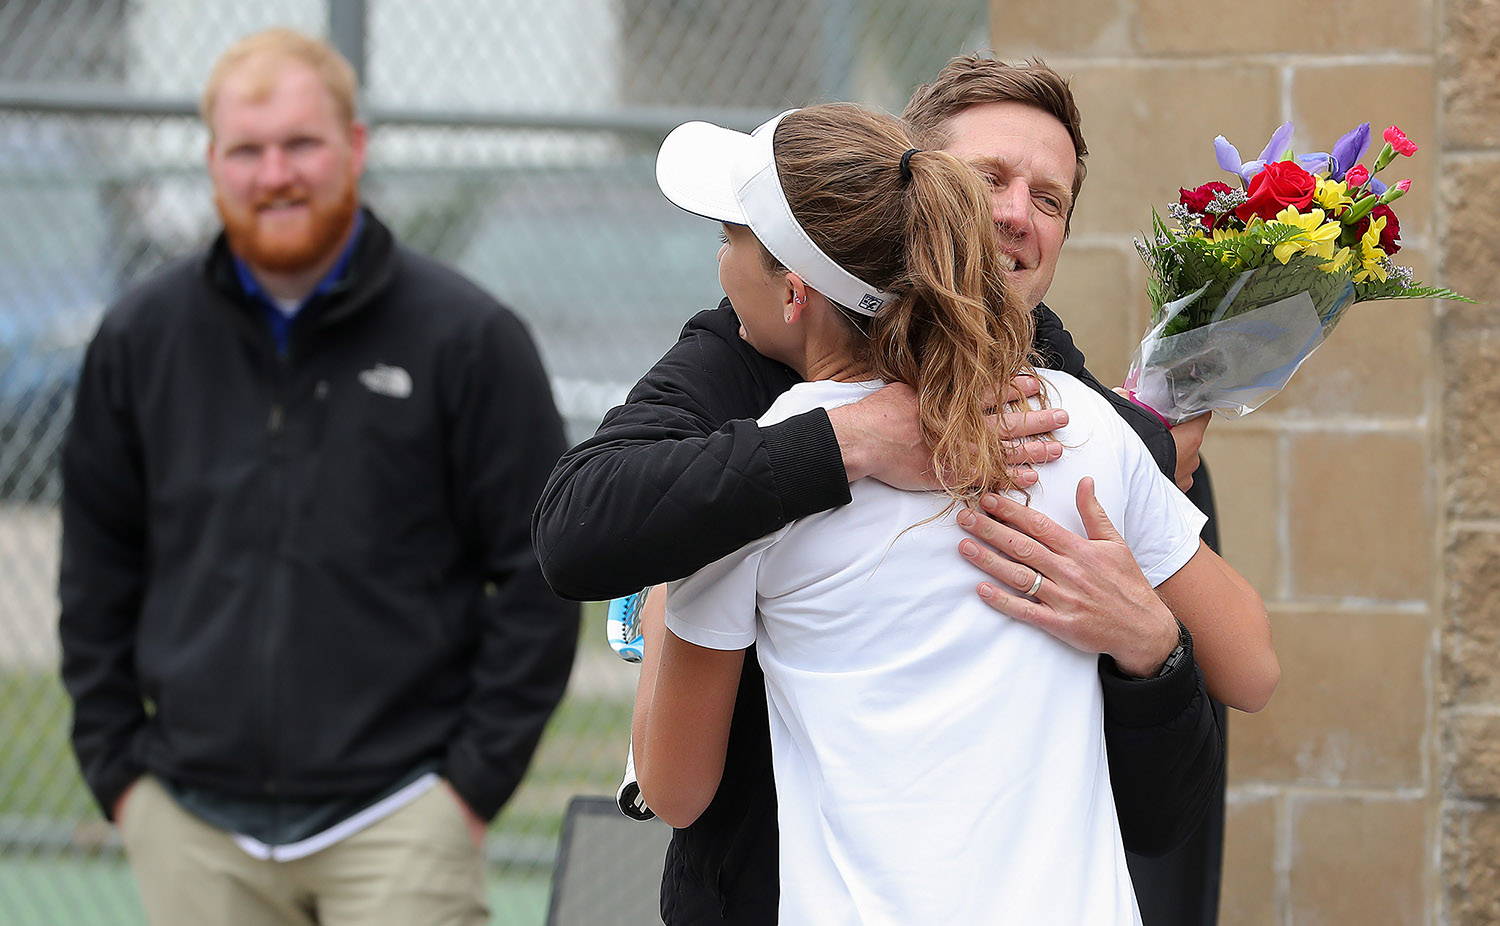 Claire Neil receives a hug from UNK head women's tennis coach Scott Shafer during an April 14 home match against Northwest Missouri State. Neil, the team's lone senior, was recognized that day.